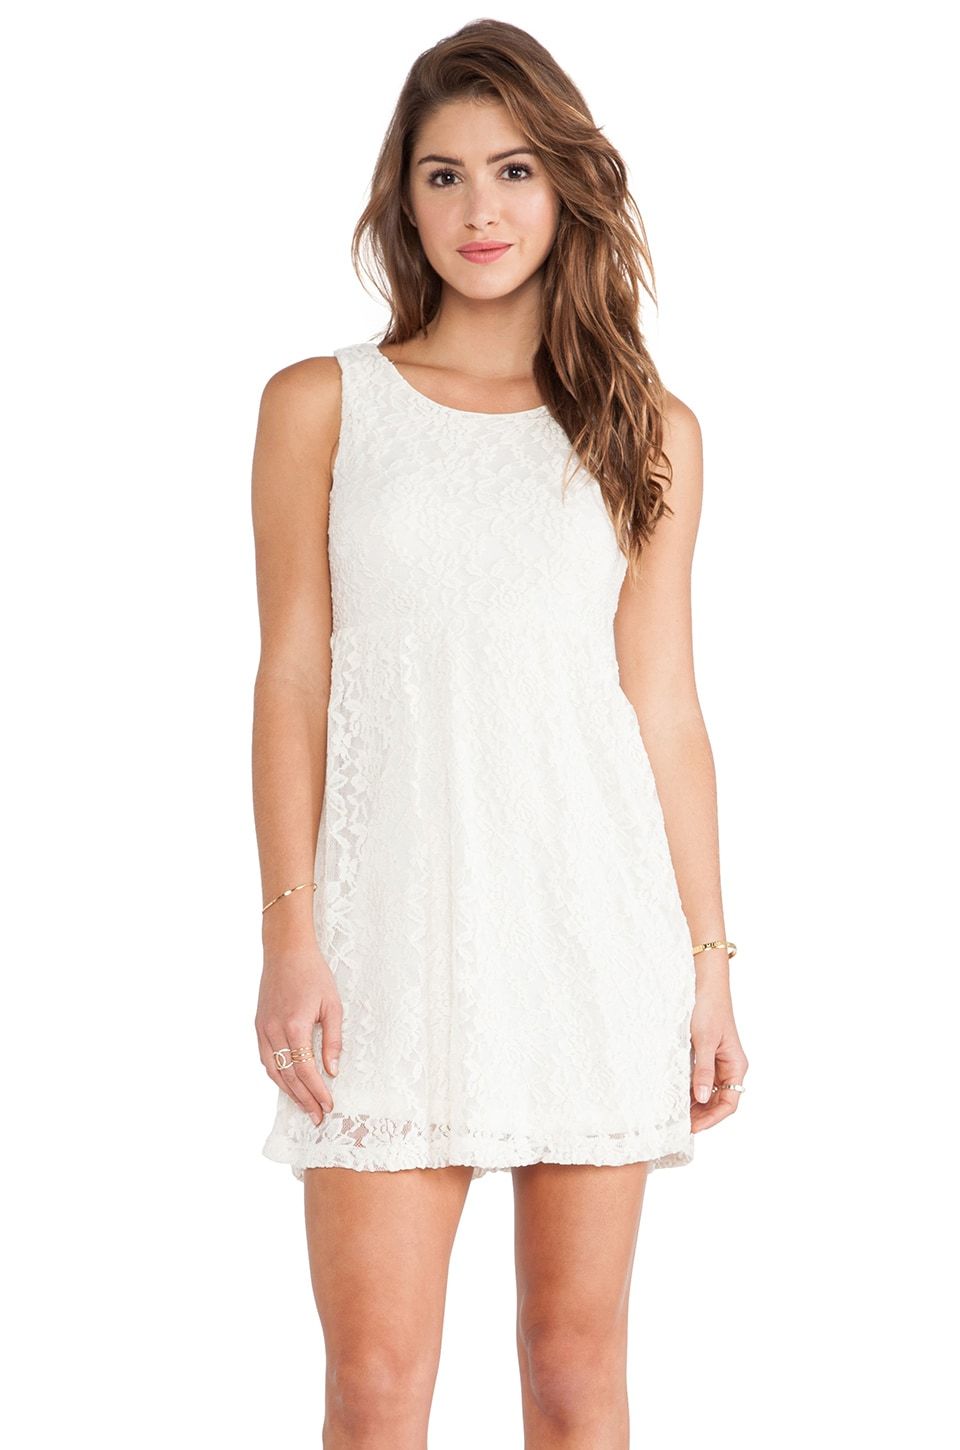 Surf Gypsy Ivory Lace Scoop Back Dress in Ivory